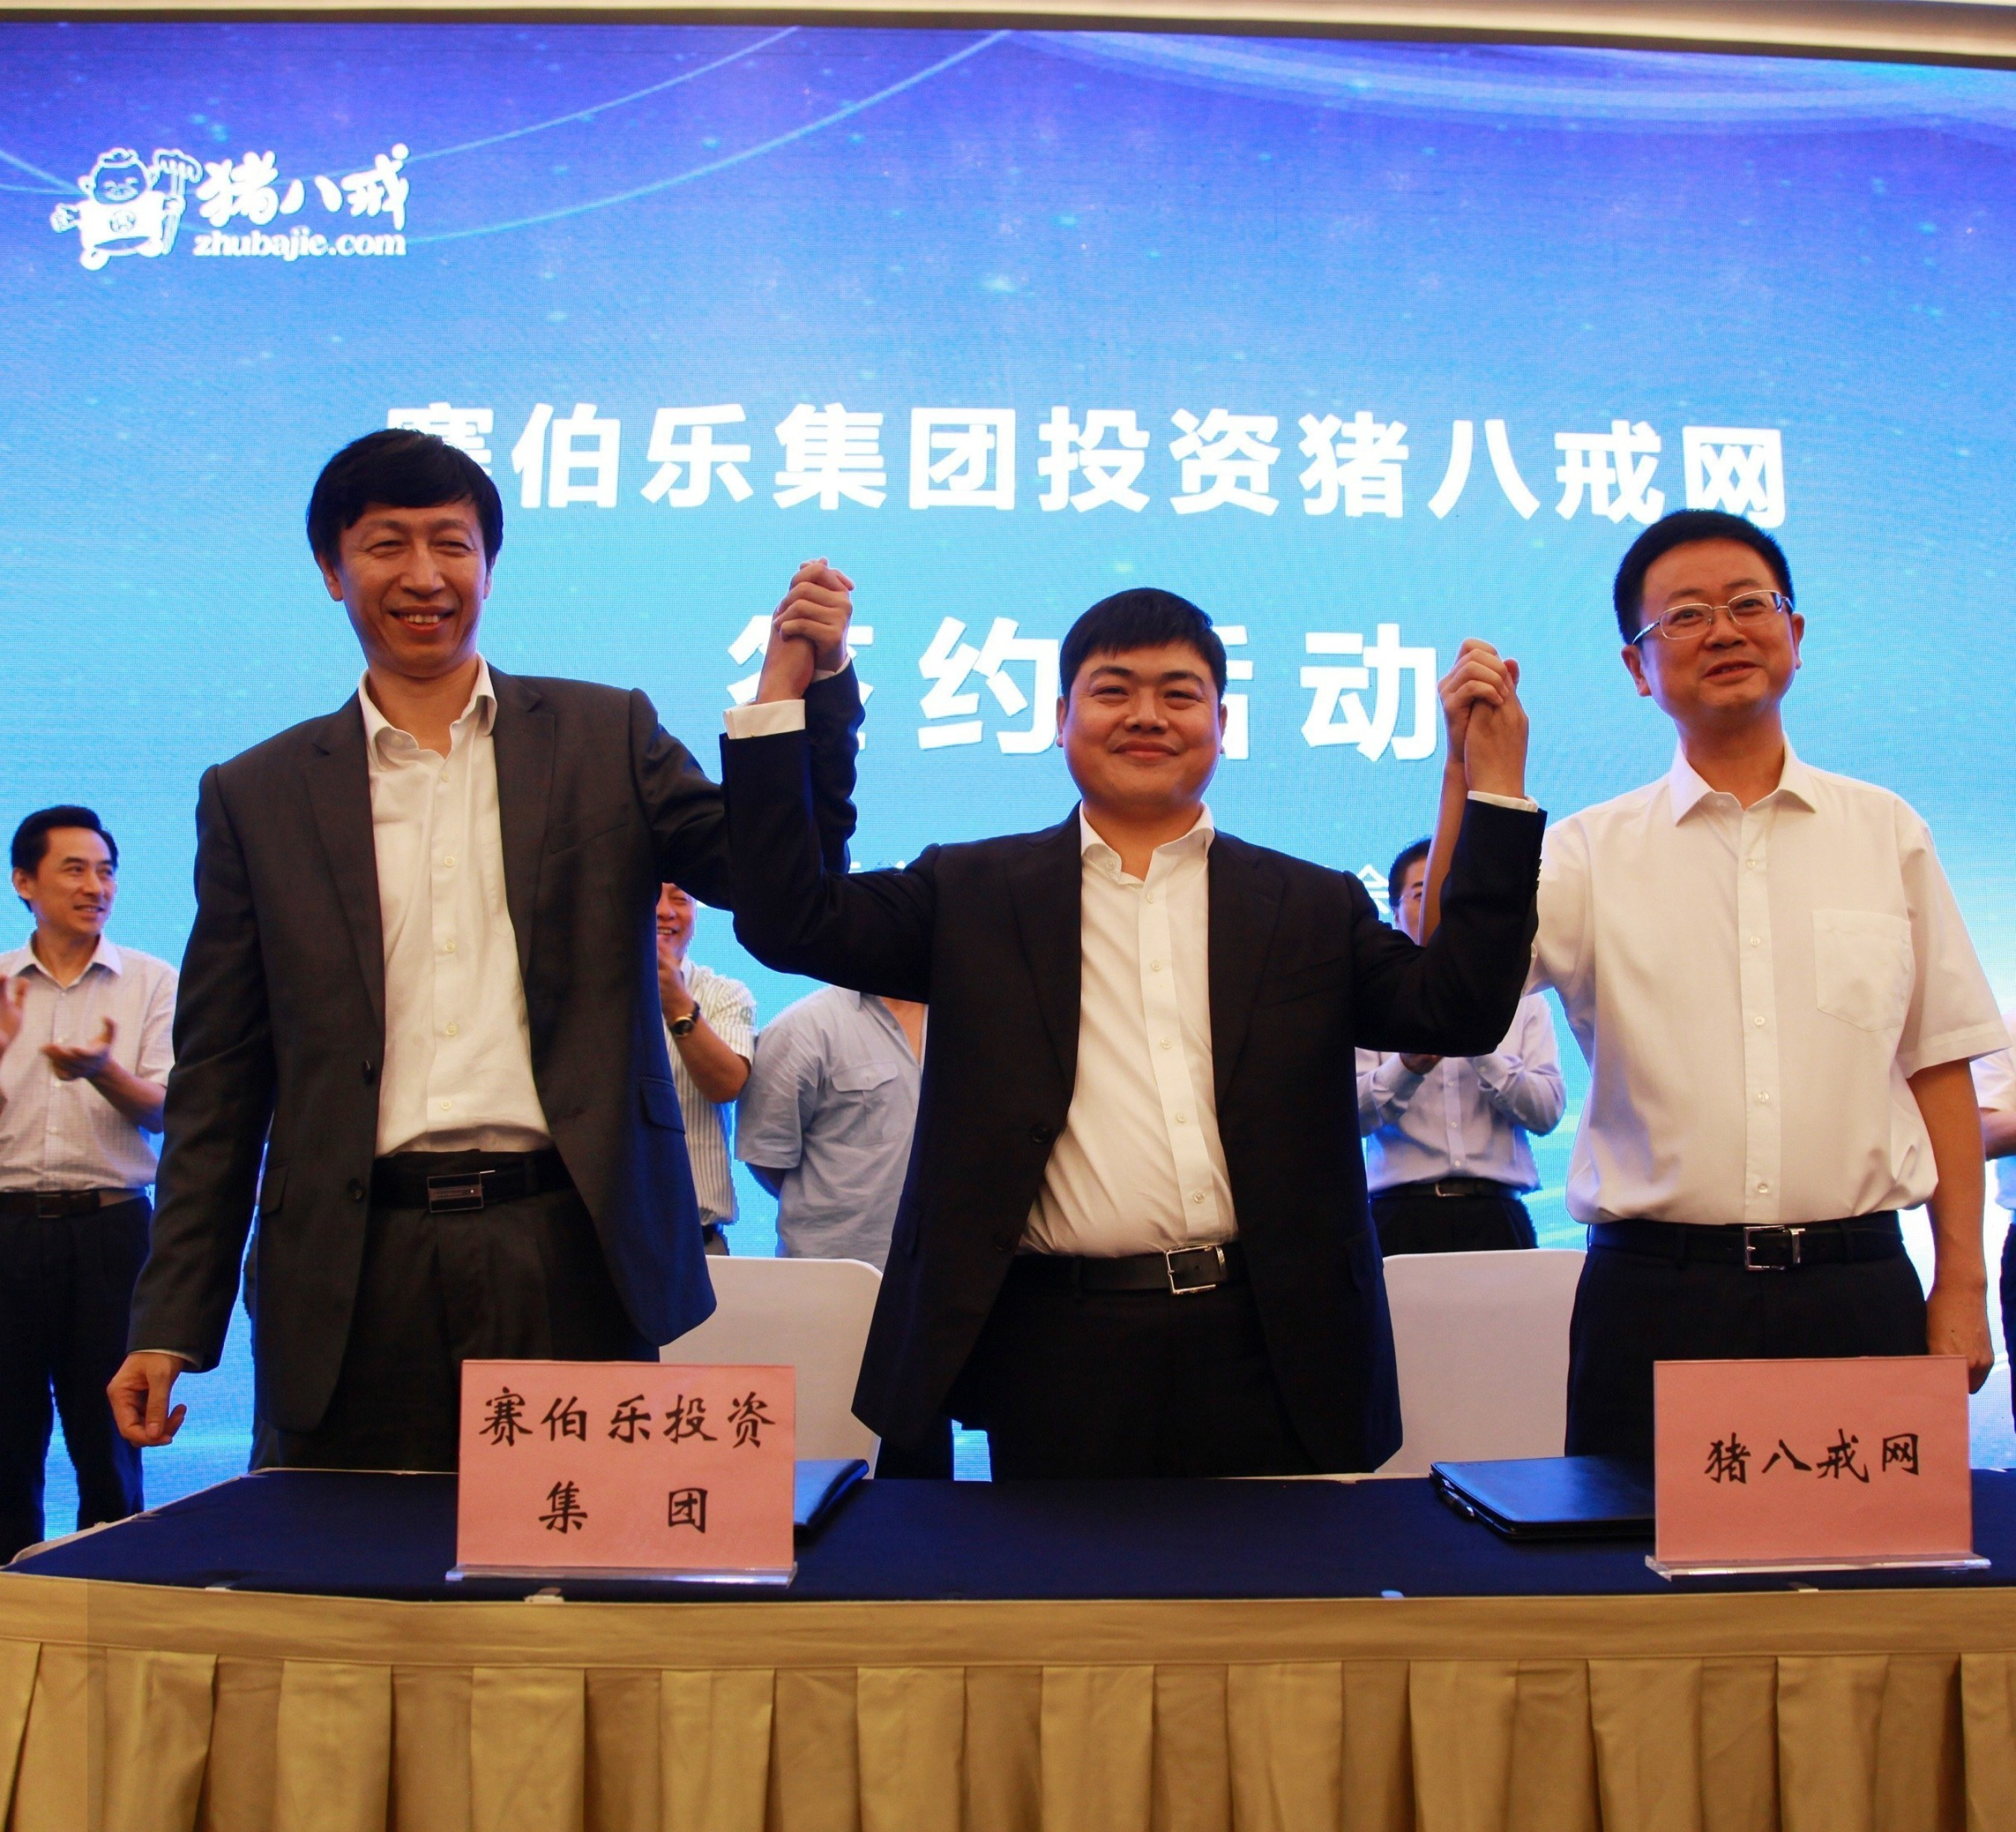 On June 15, in Chongqing, China, Witmart obtained 2.6 billion yuan investment